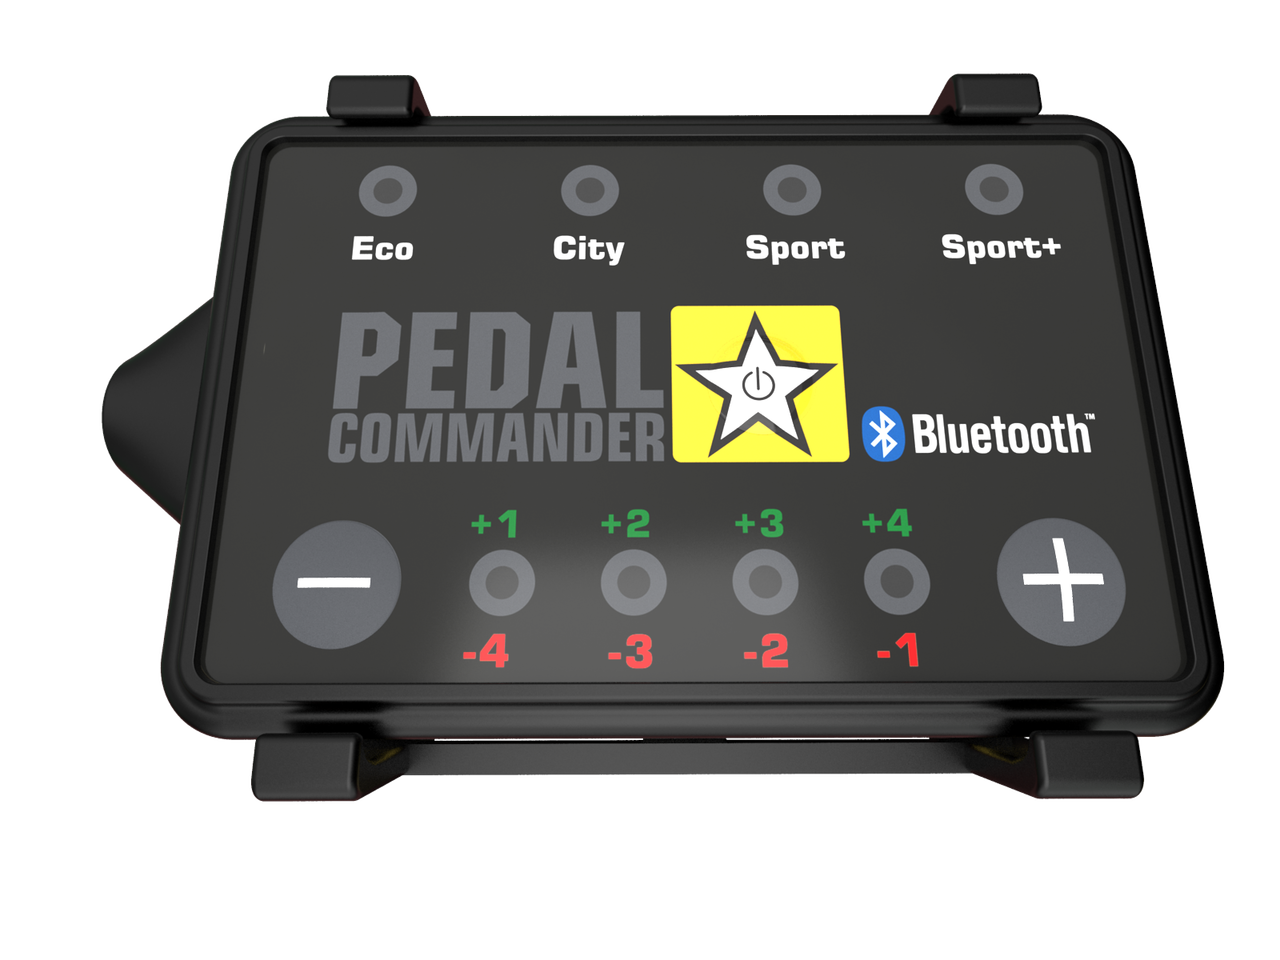 Pedal Commander PC31 Bluetooth For 2007-2018 Dodge Ram 2500/3500 Trucks